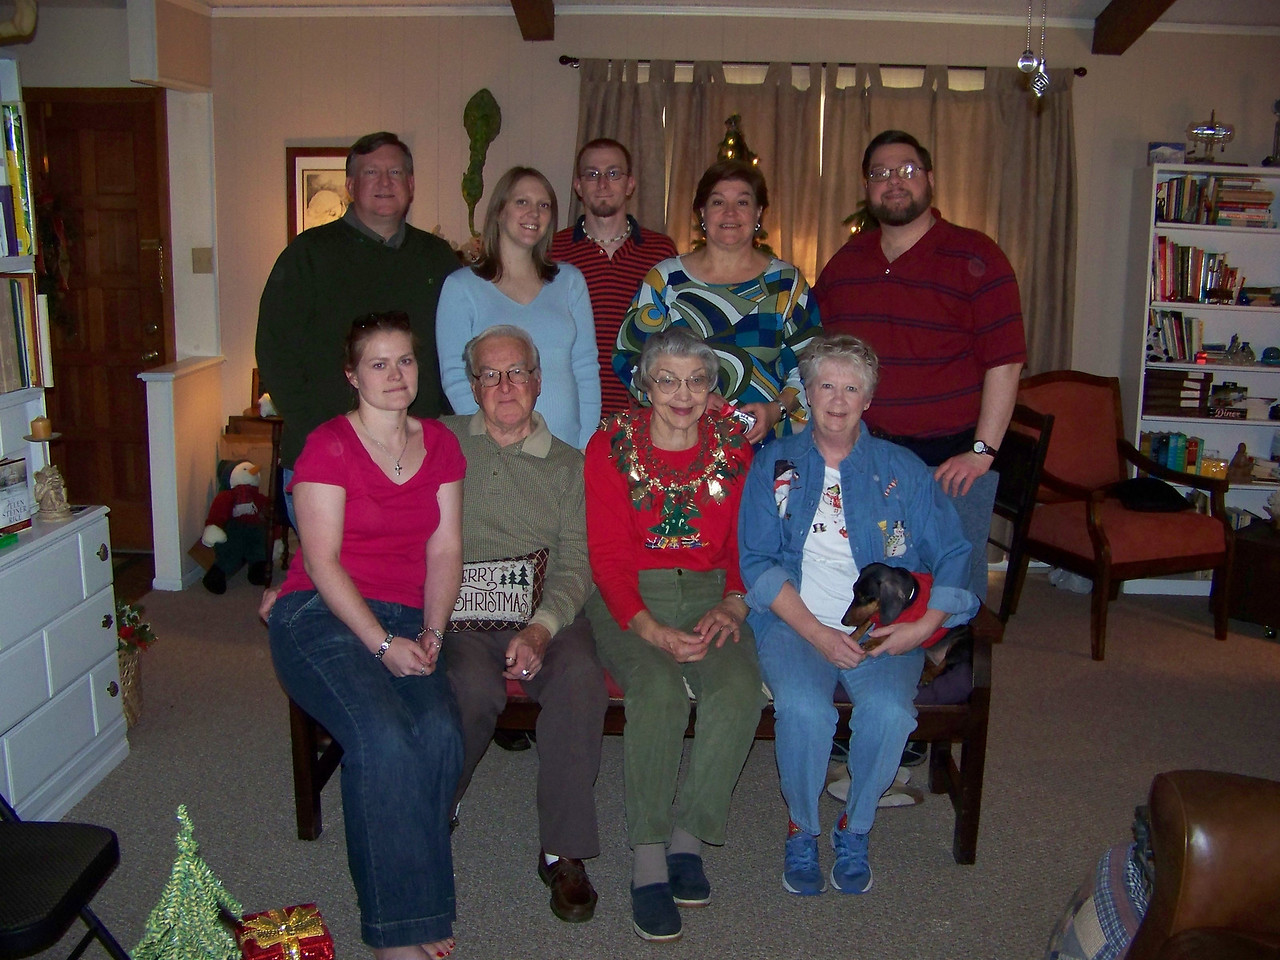 We had Christmas Day at Sheri's house.  Back row, from left:  Mark, Kalyn, Josh, Wendy, Jon.  Front row, from left:  Jenna, Dad, Mom, Sheri and Oscar.